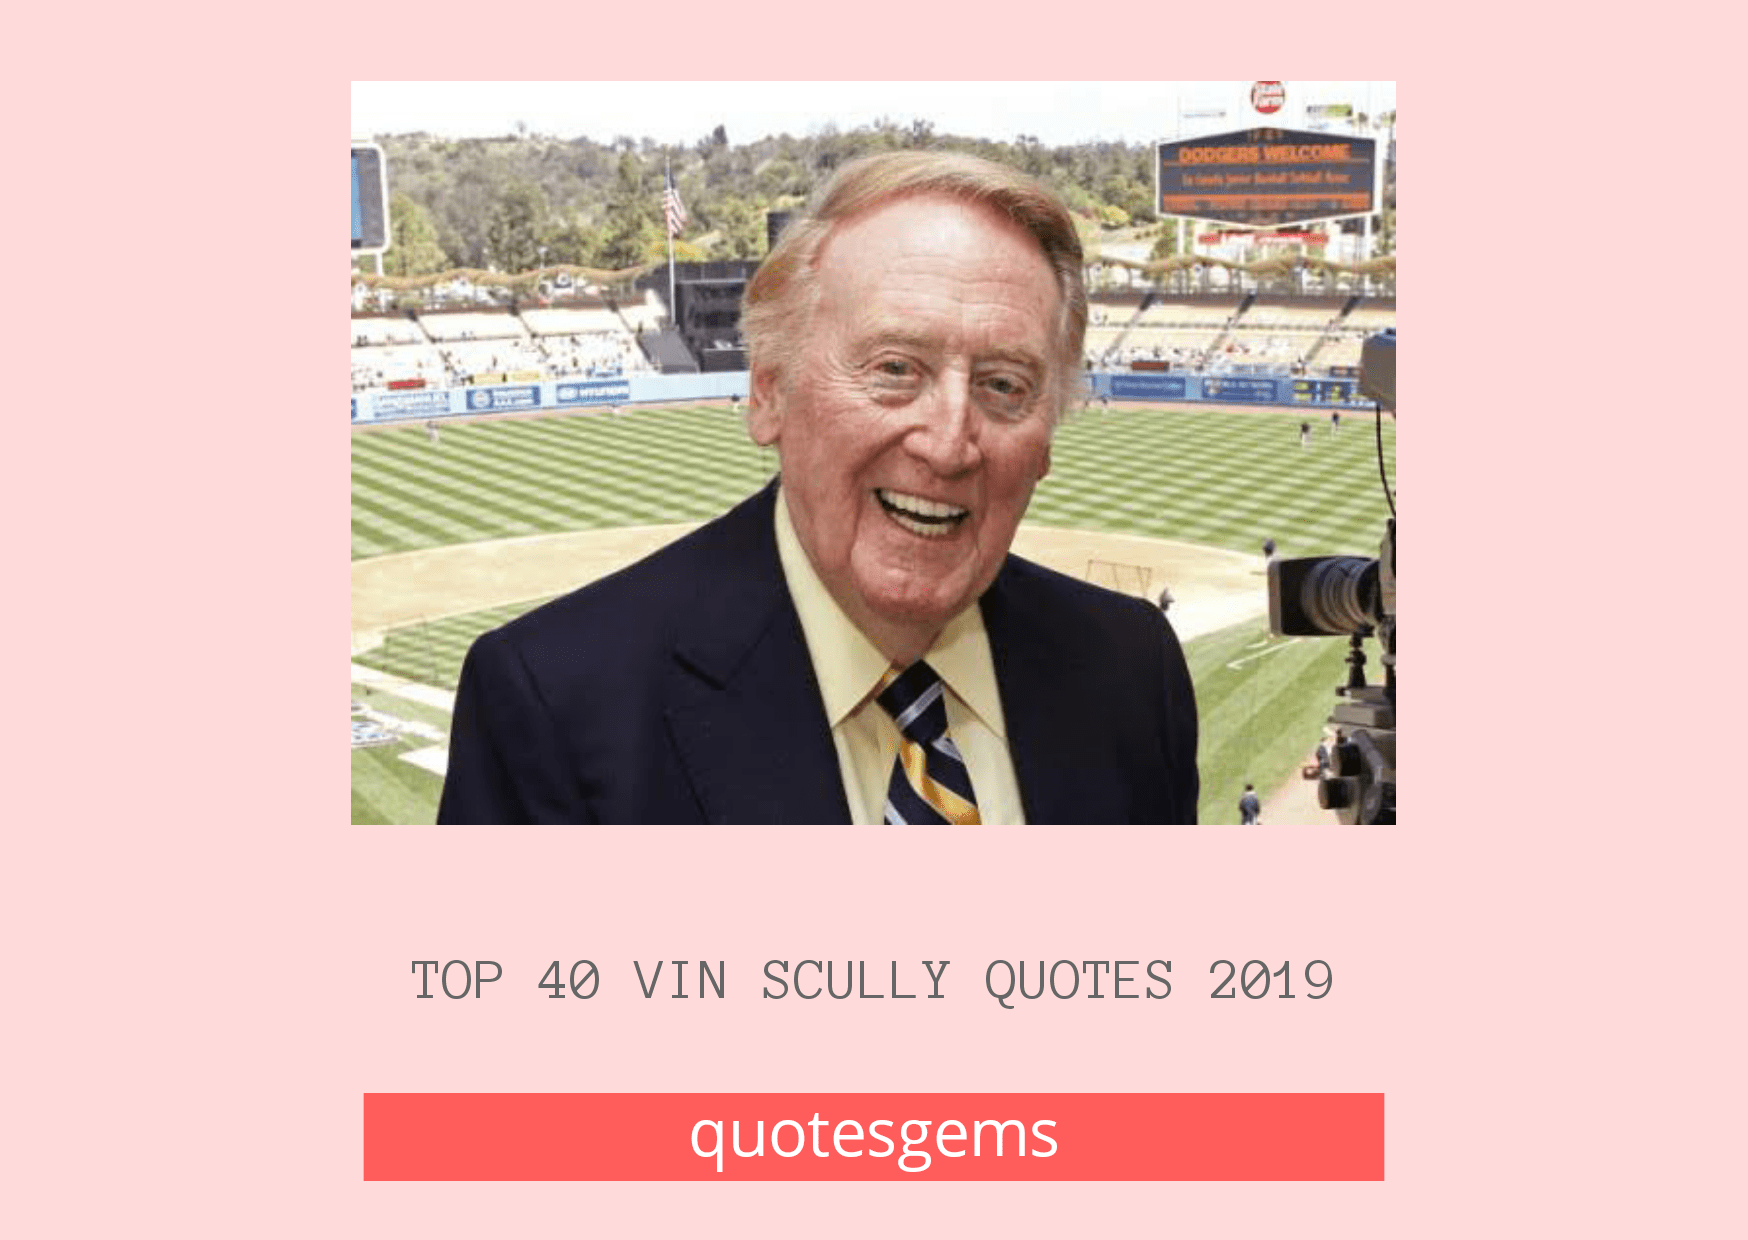 Vin Scully Quotes 2019